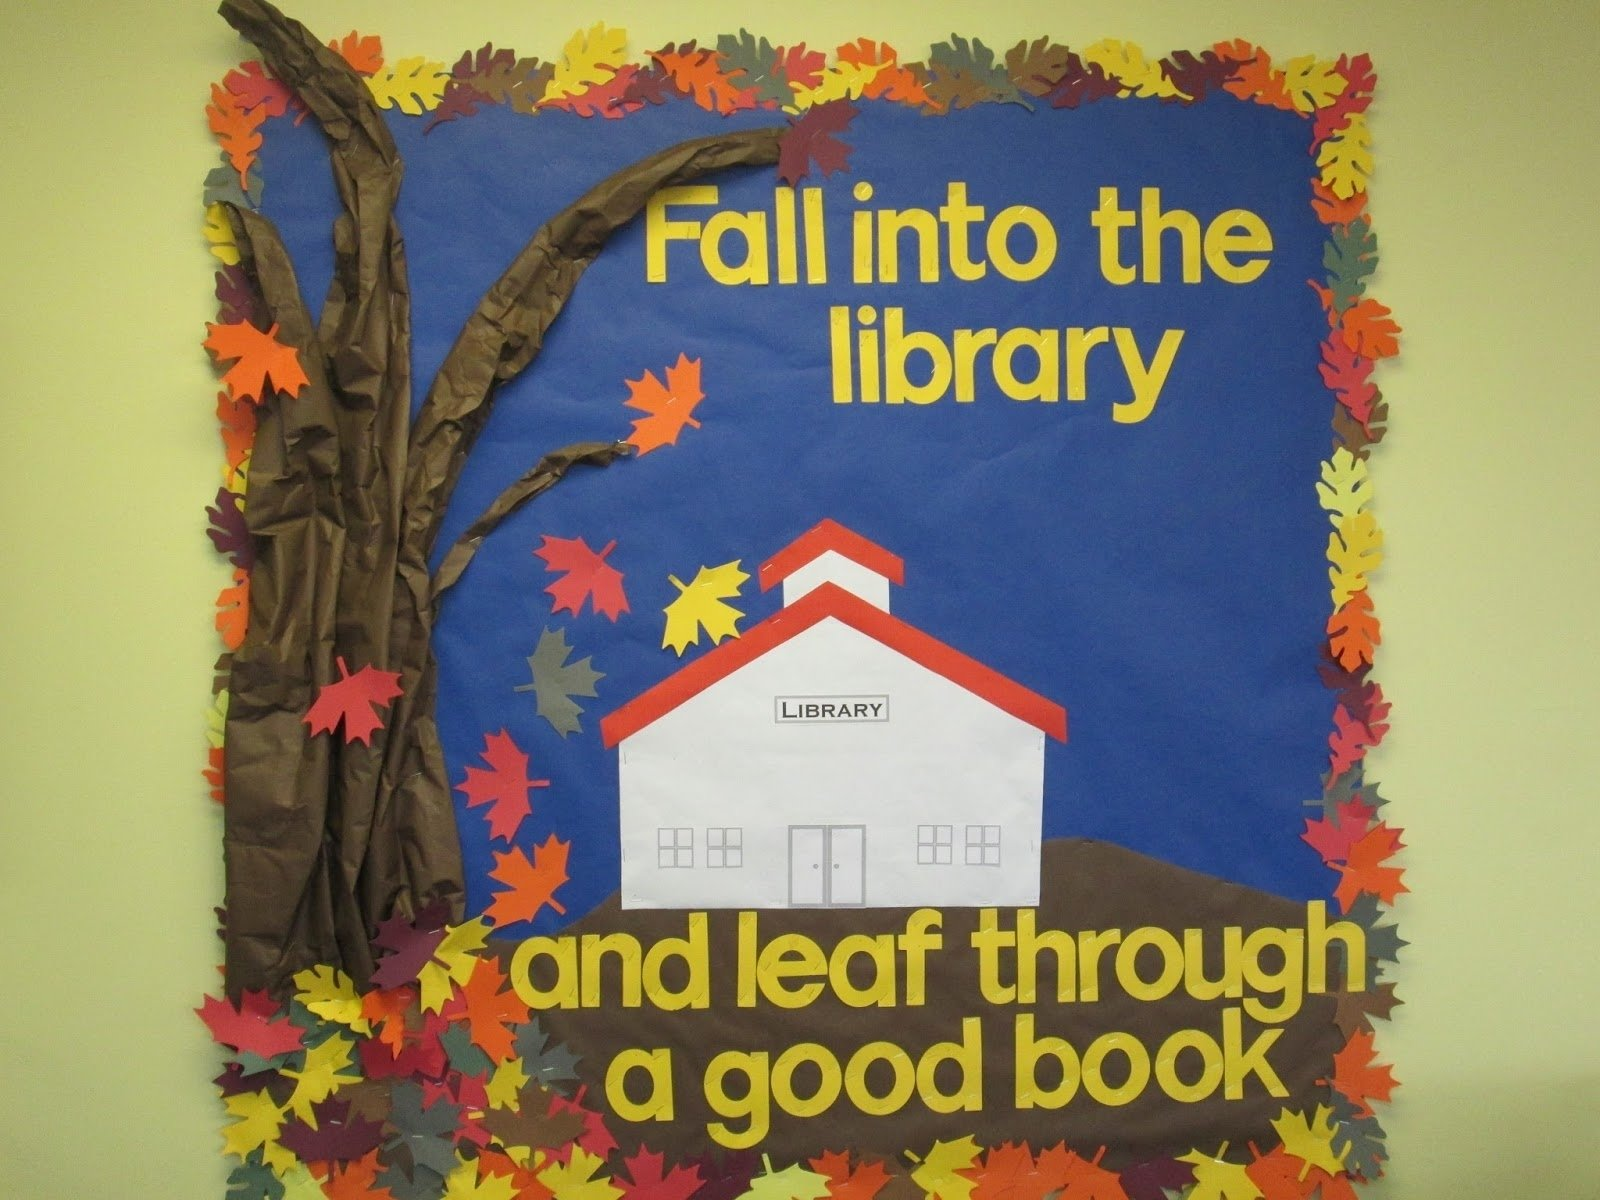 10 Stunning Welcome Back To School Bulletin Board Ideas lorris school library blog fun fall library school bulletin 2